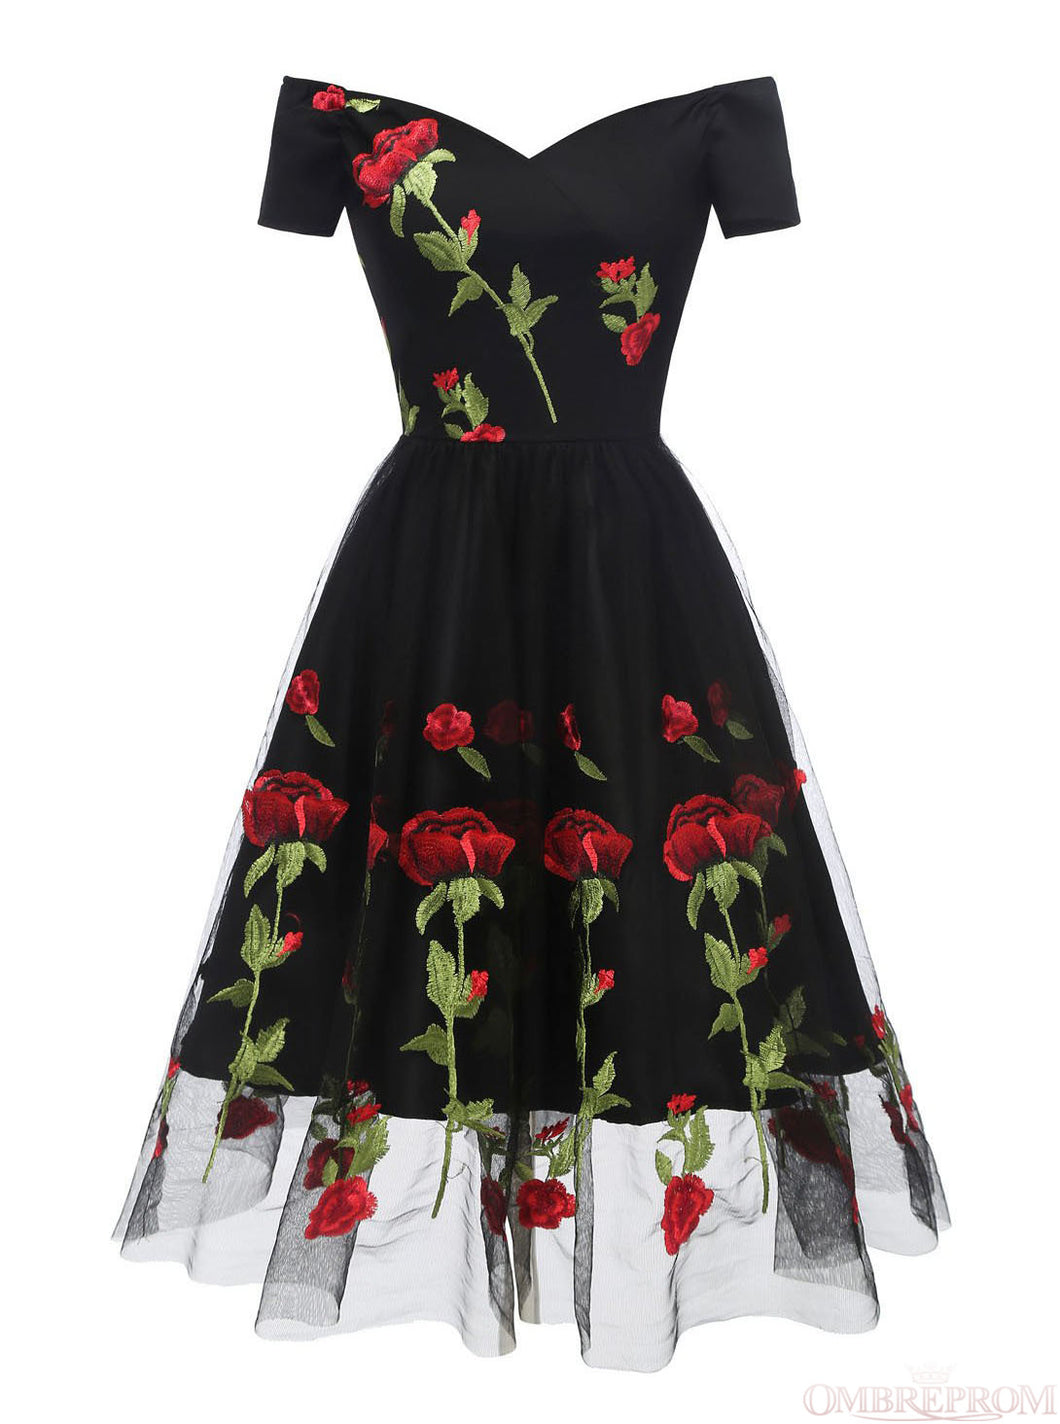 Off-Shoulder Floral Embroidery Prom Dresses Short Sleeves Party Dress OM313